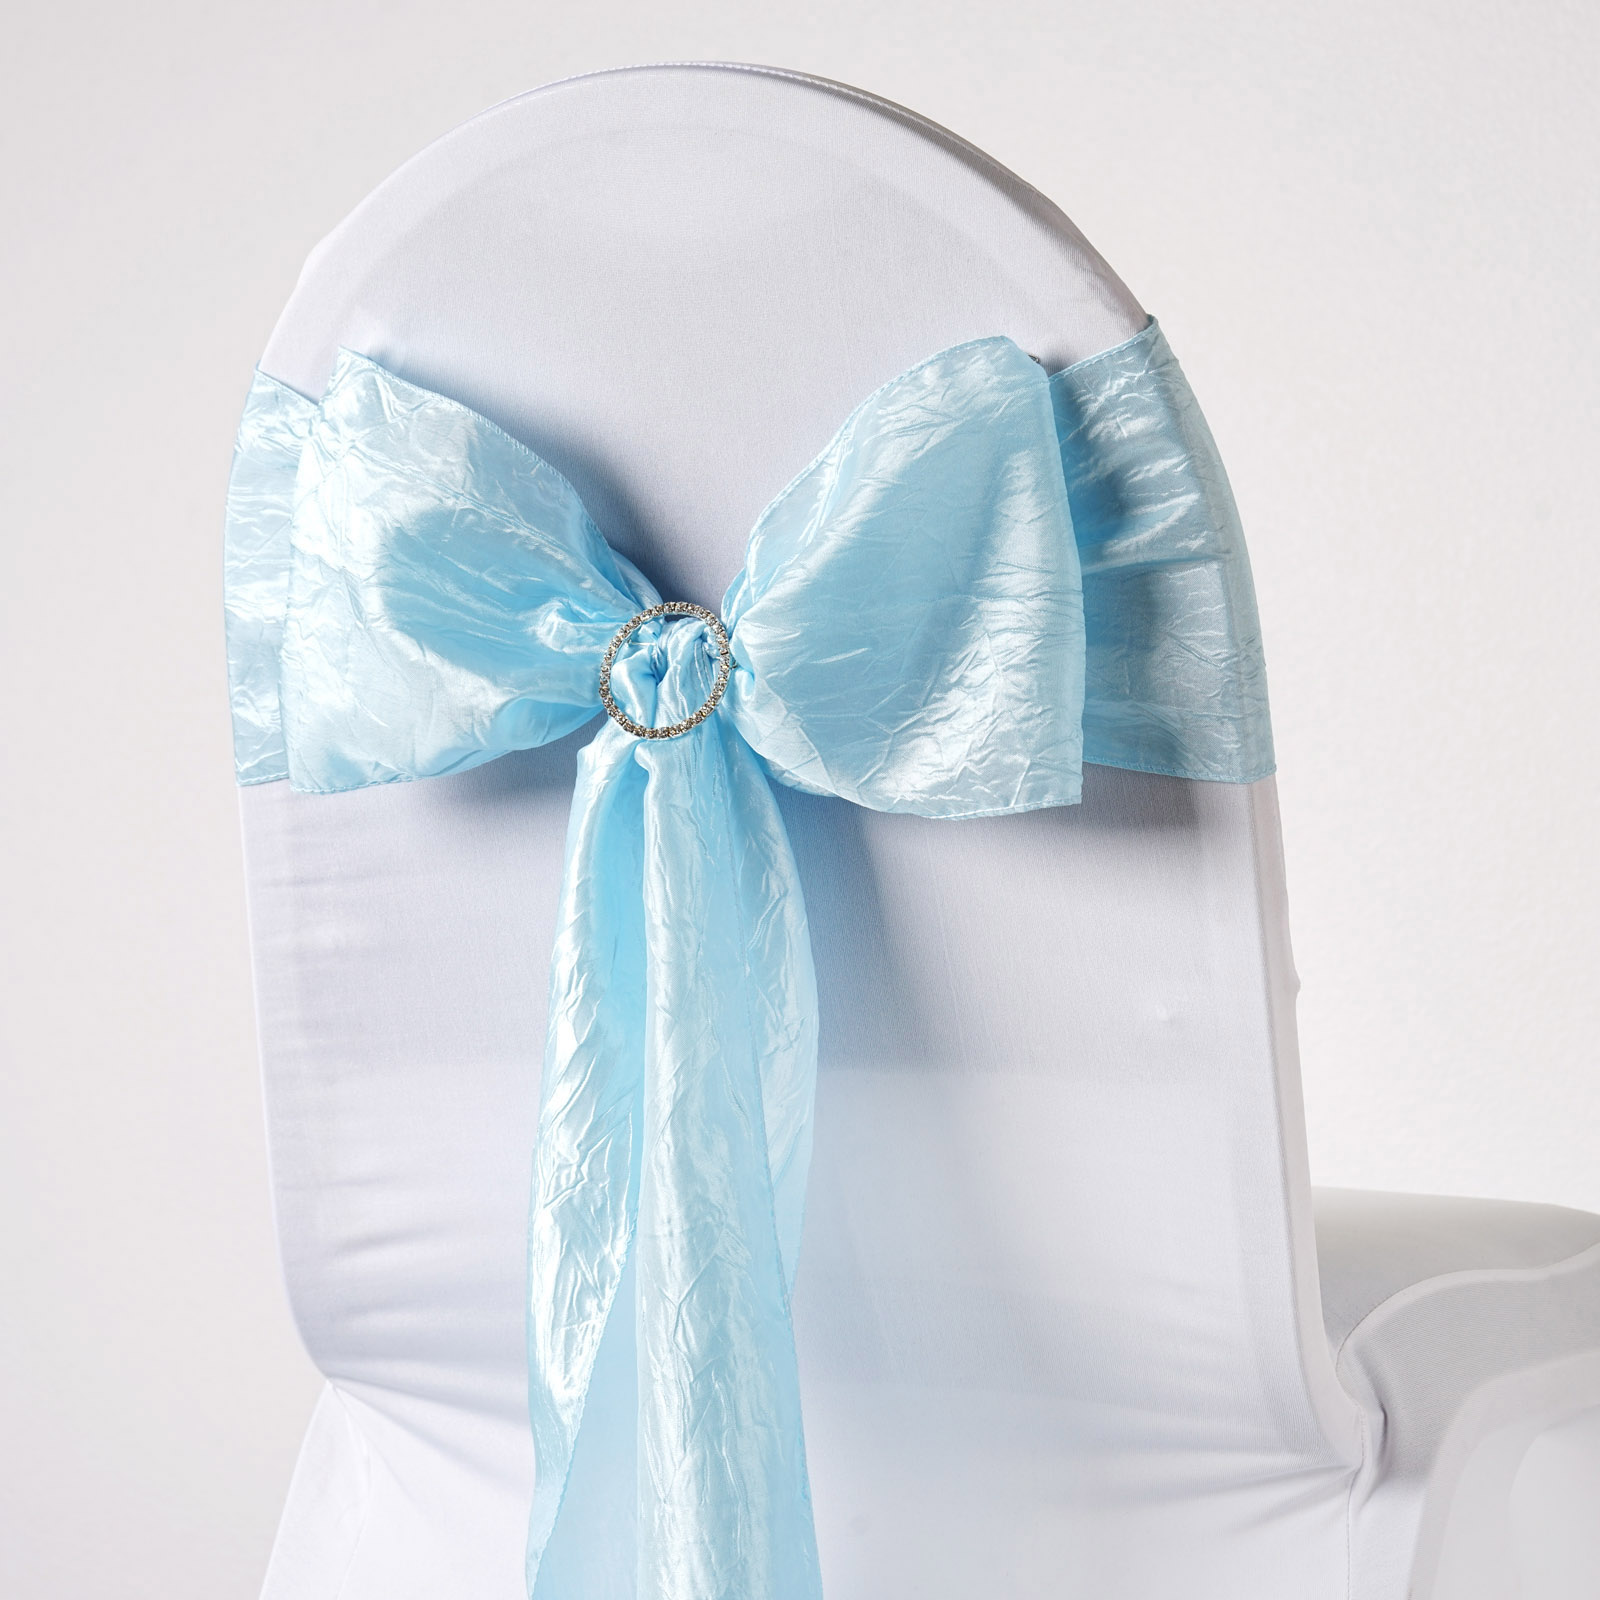 baby blue chair covers slip covered 10 light crinkled taffeta sashes ties bows wedding details about decorations sale